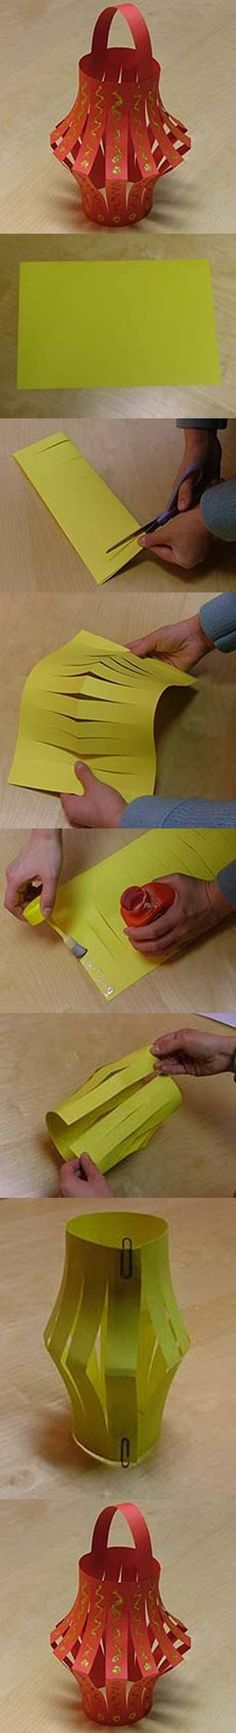 DIY Paper Lantern DIY Projects | UsefulDIY.com Follow Us on Facebook ==> http://www.facebook.com/UsefulDiy